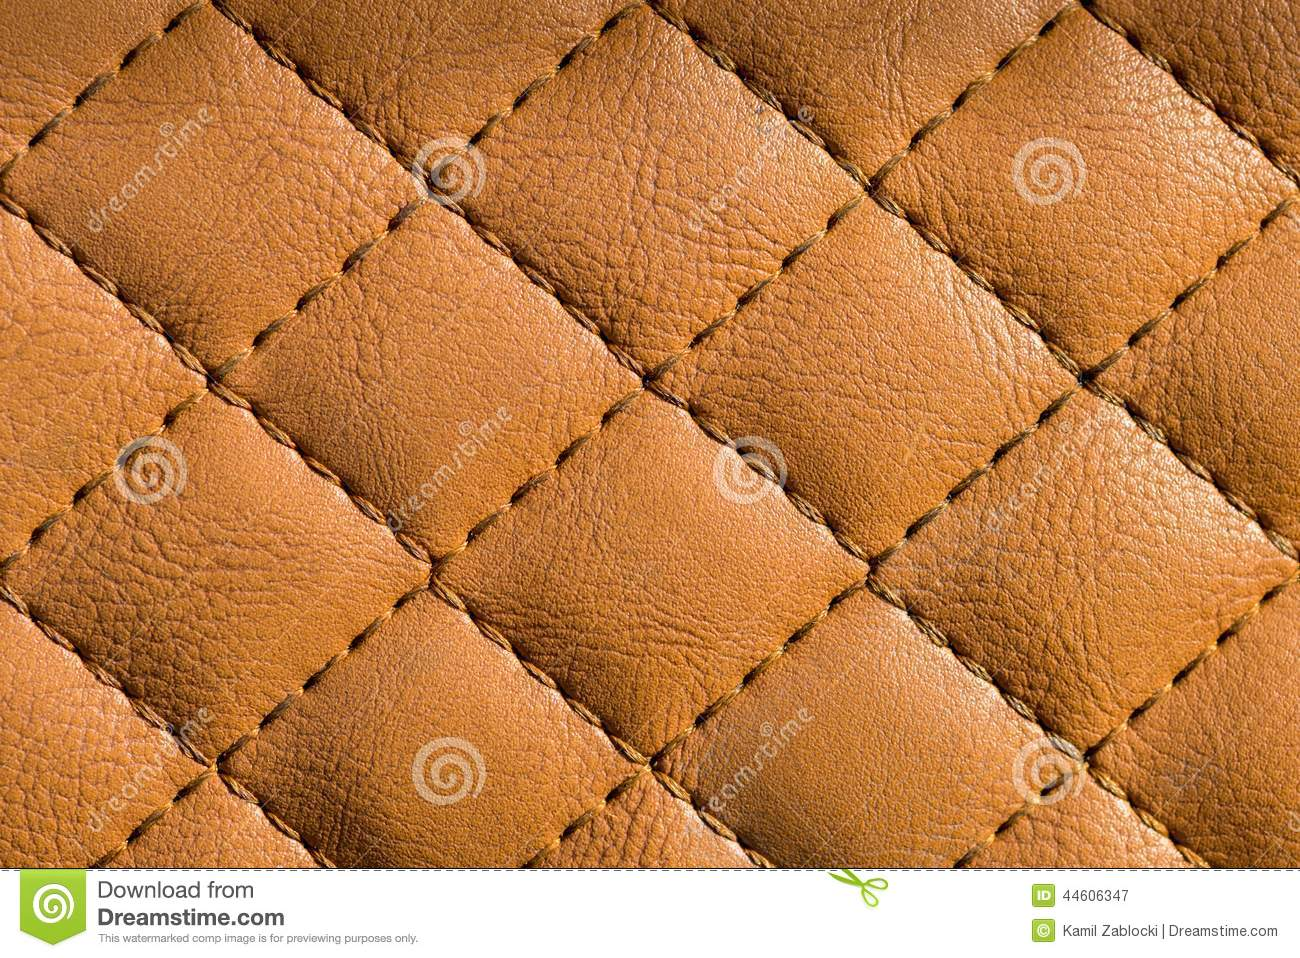 Quilted Leather - The Quilting Ideas : quilted leather material - Adamdwight.com